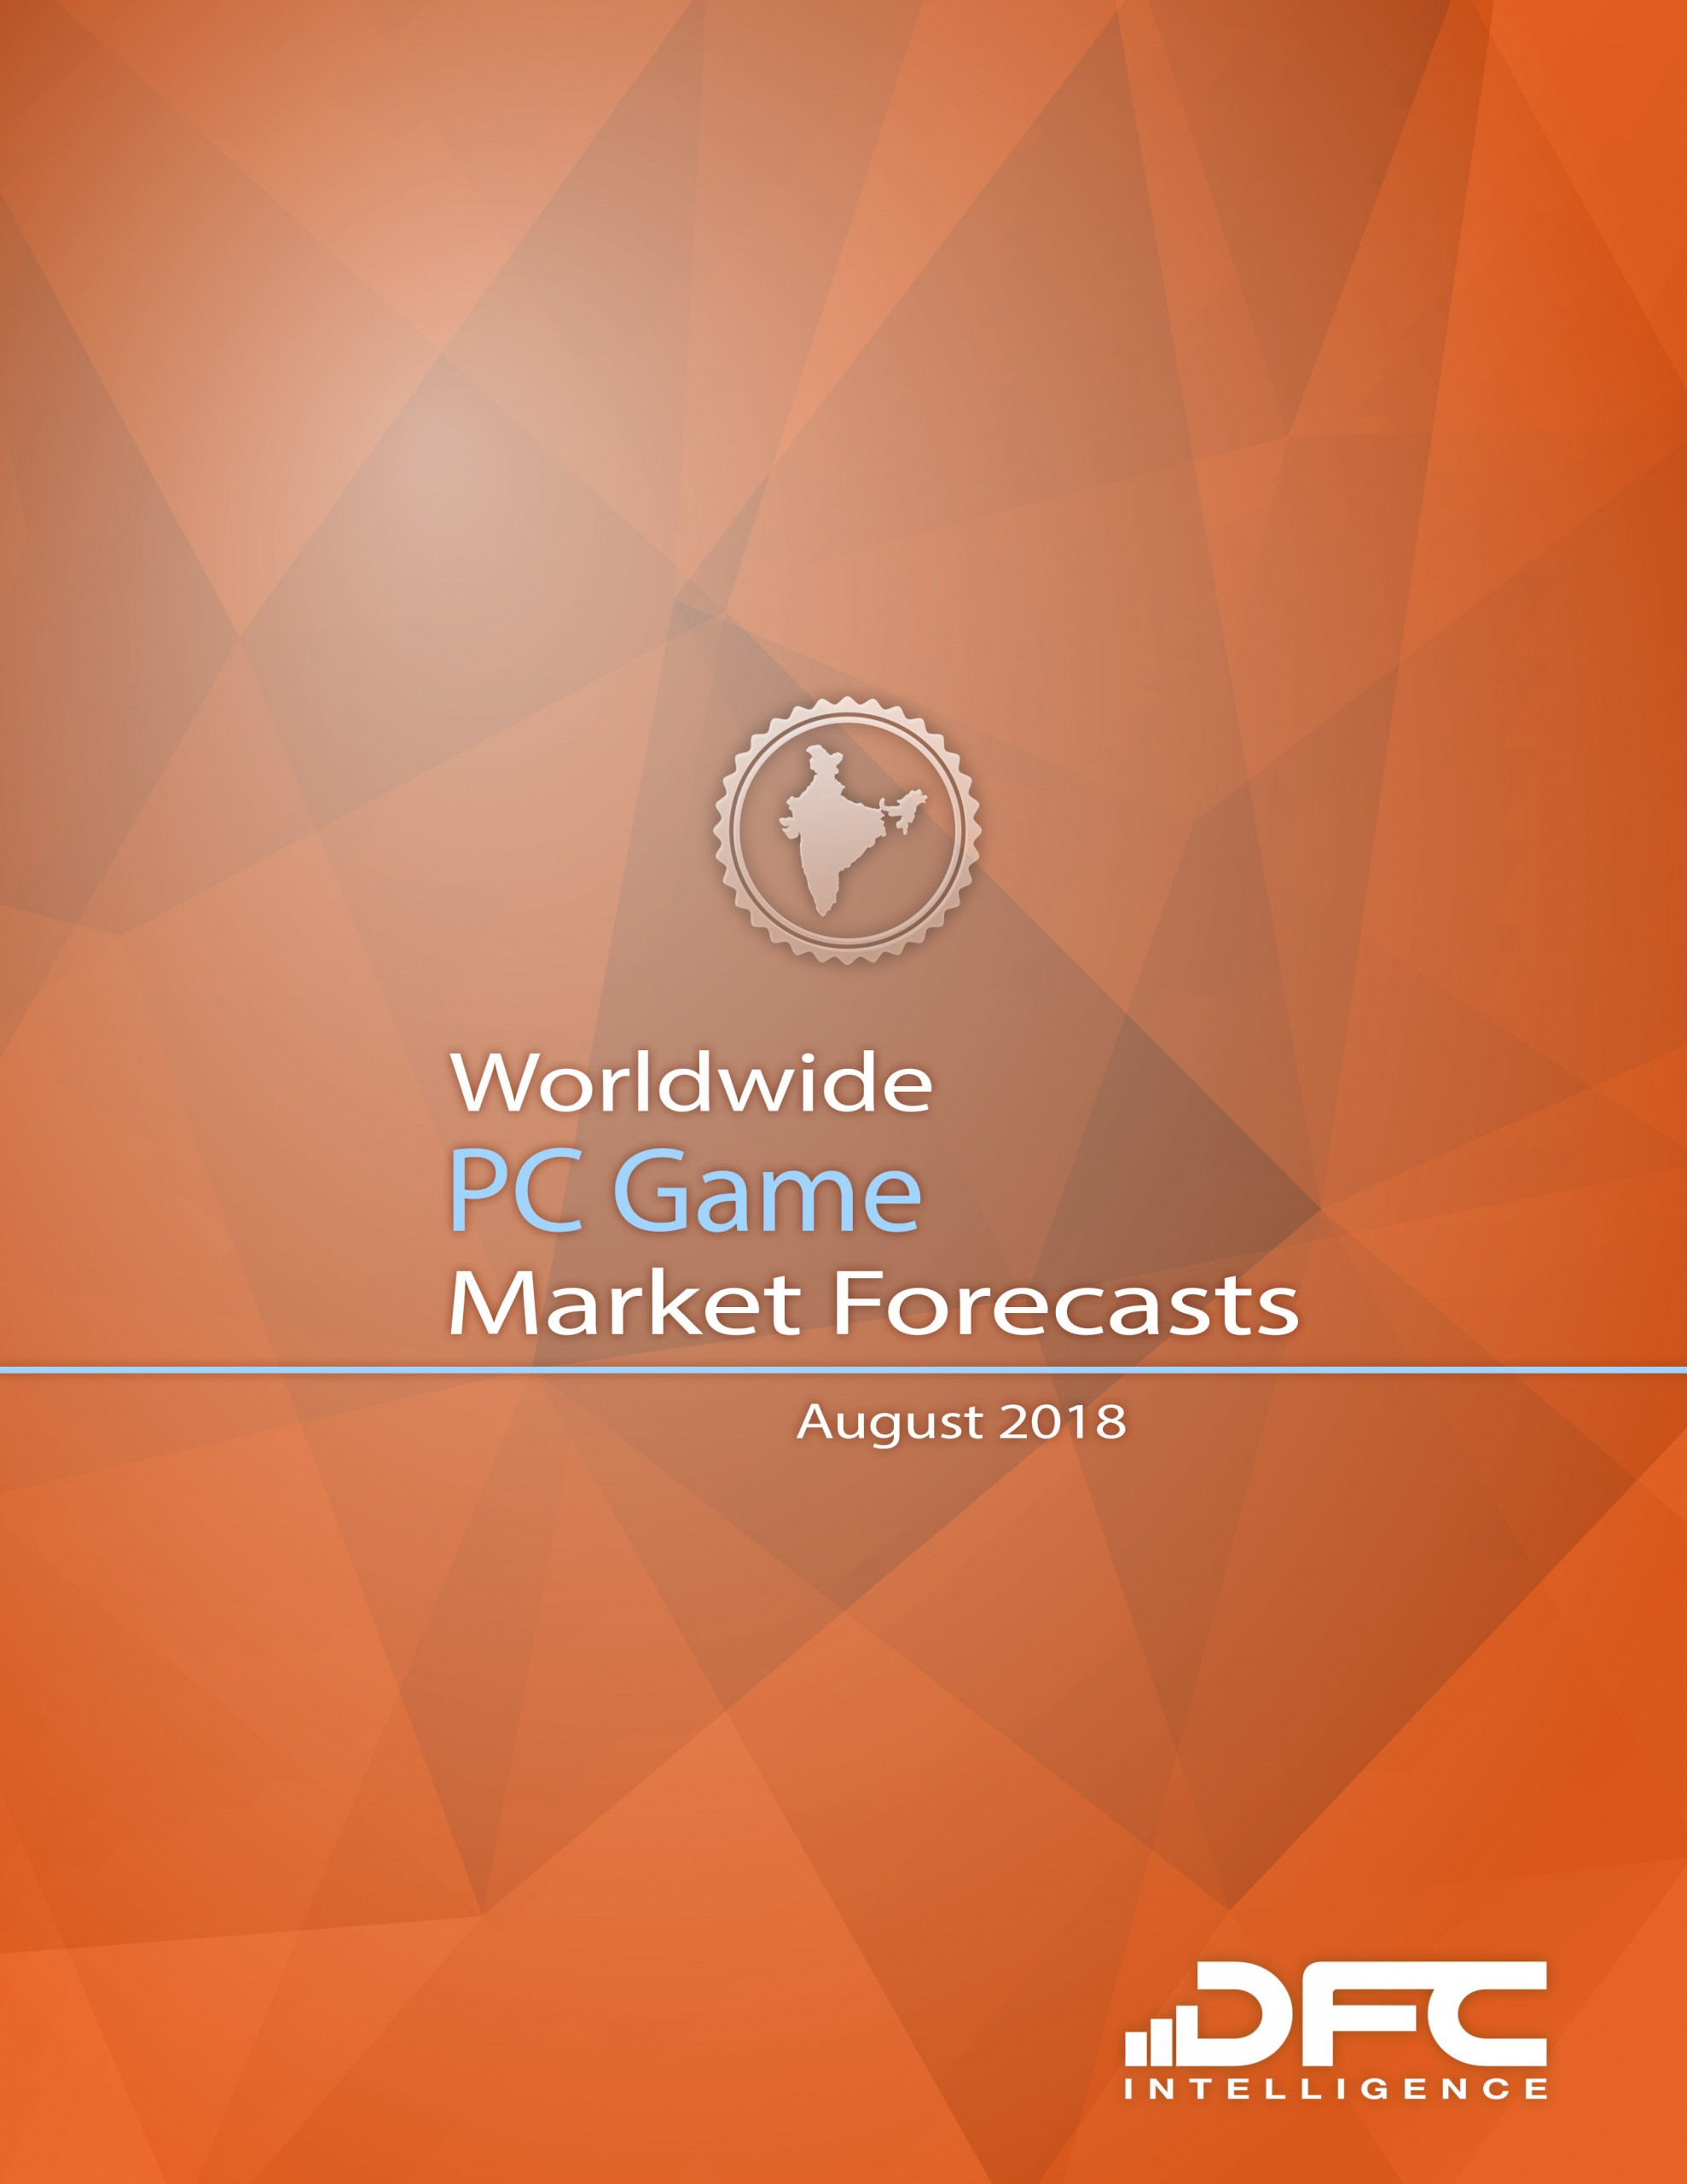 Worldwide PC Game Market Forecasts Report